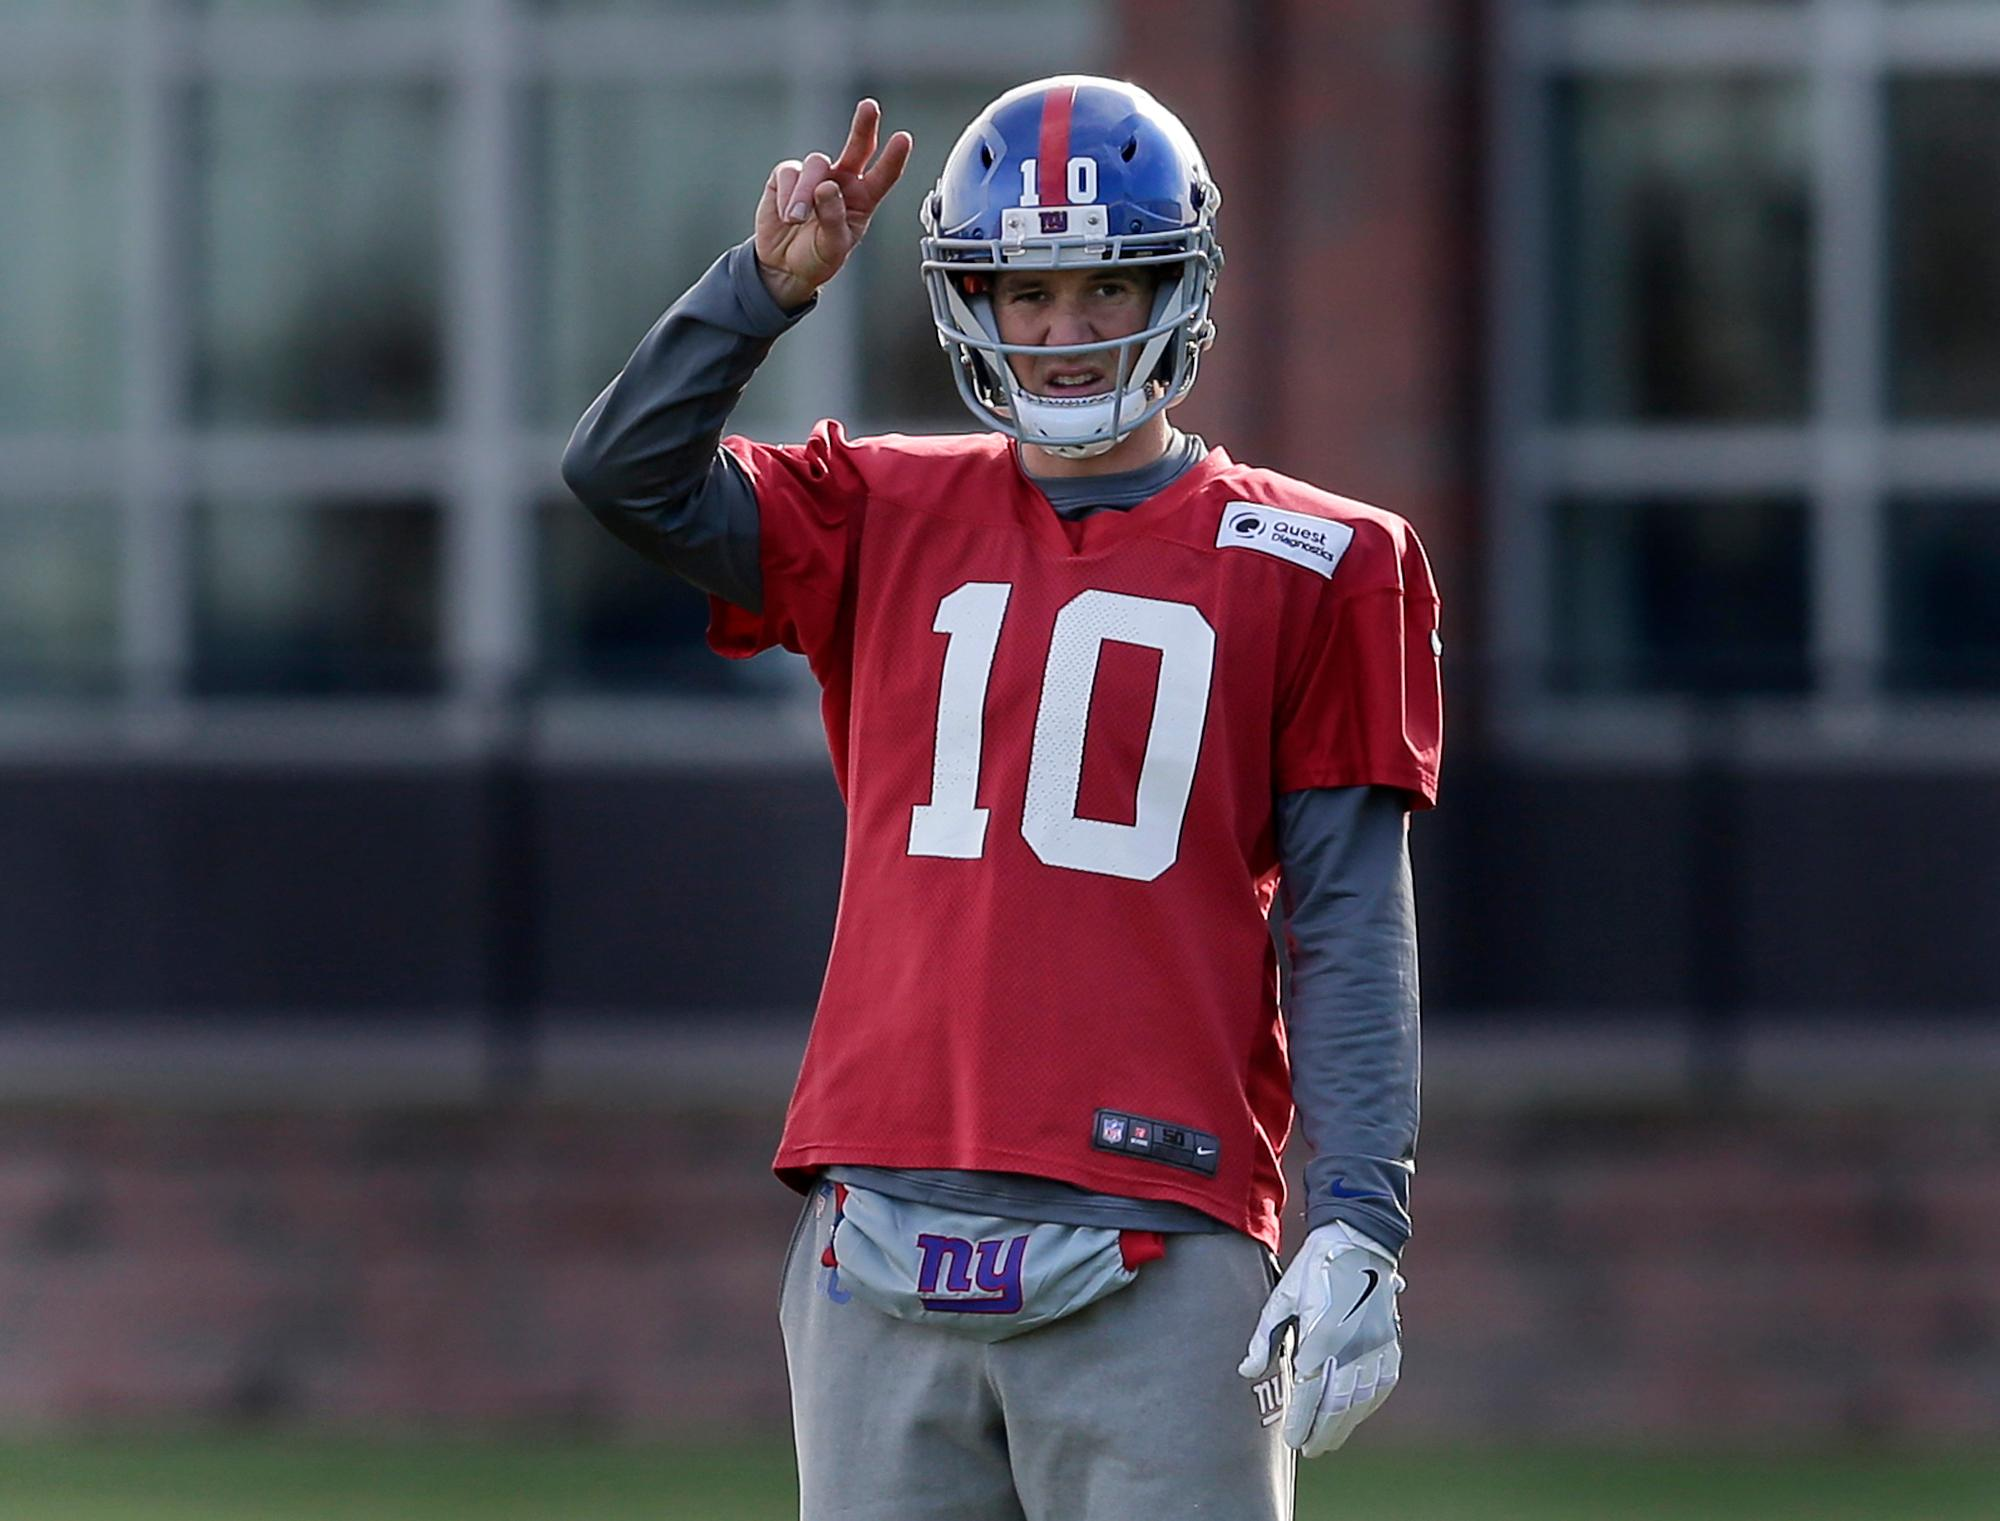 New York Giants quarterback Eli Manning participates in an NFL football practice in East Rutherford, N.J., Wednesday, Dec. 6, 2017. (AP Photo/Seth Wenig)